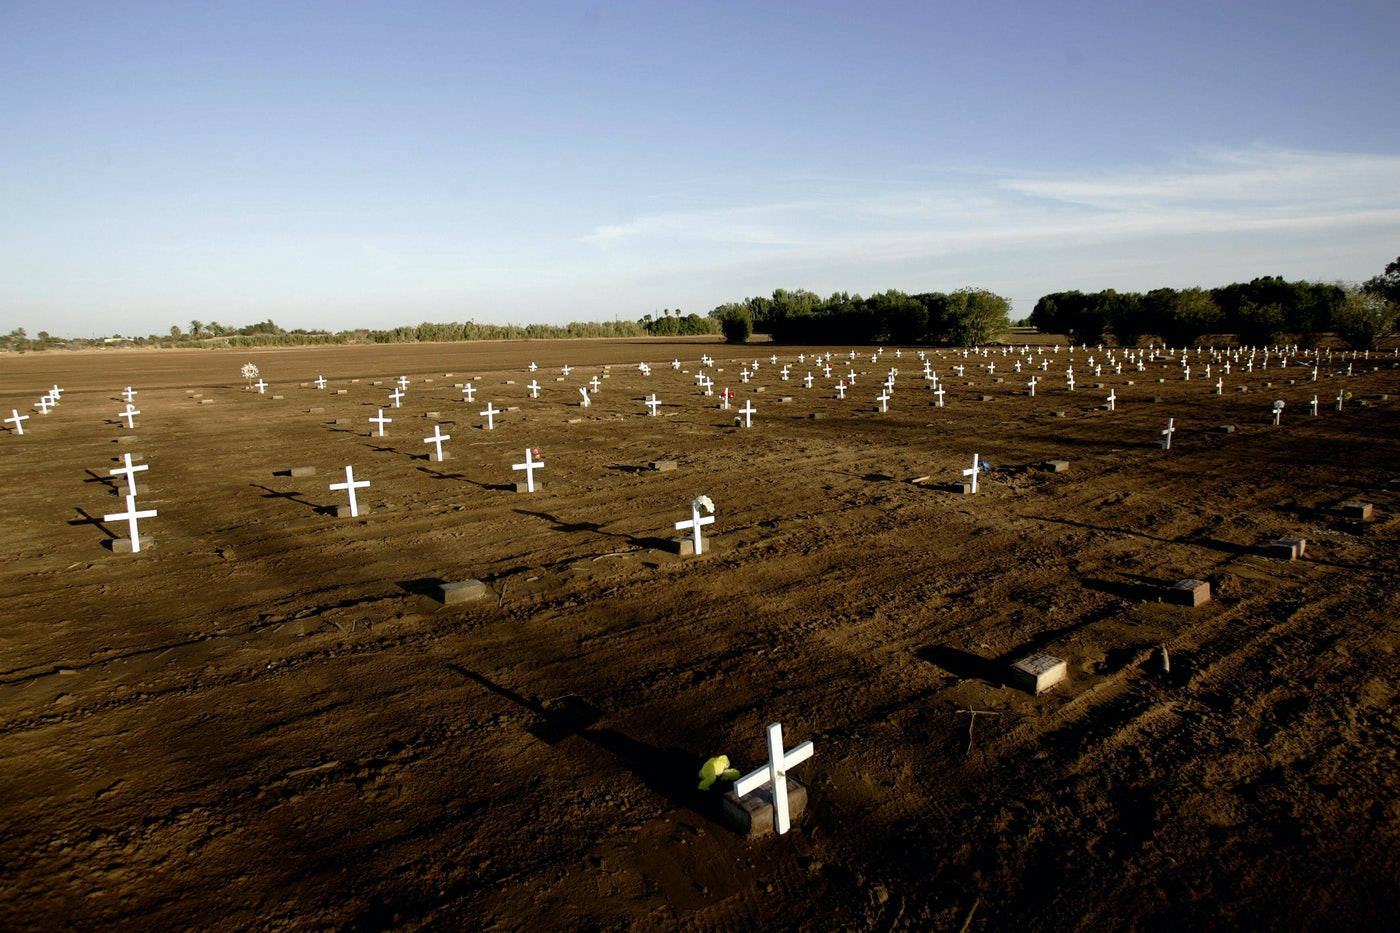 A makeshift cemetery bearing the bodies of unidentified people who have died crossing the border in the city of Holtville, a few miles east of San Diego, CA